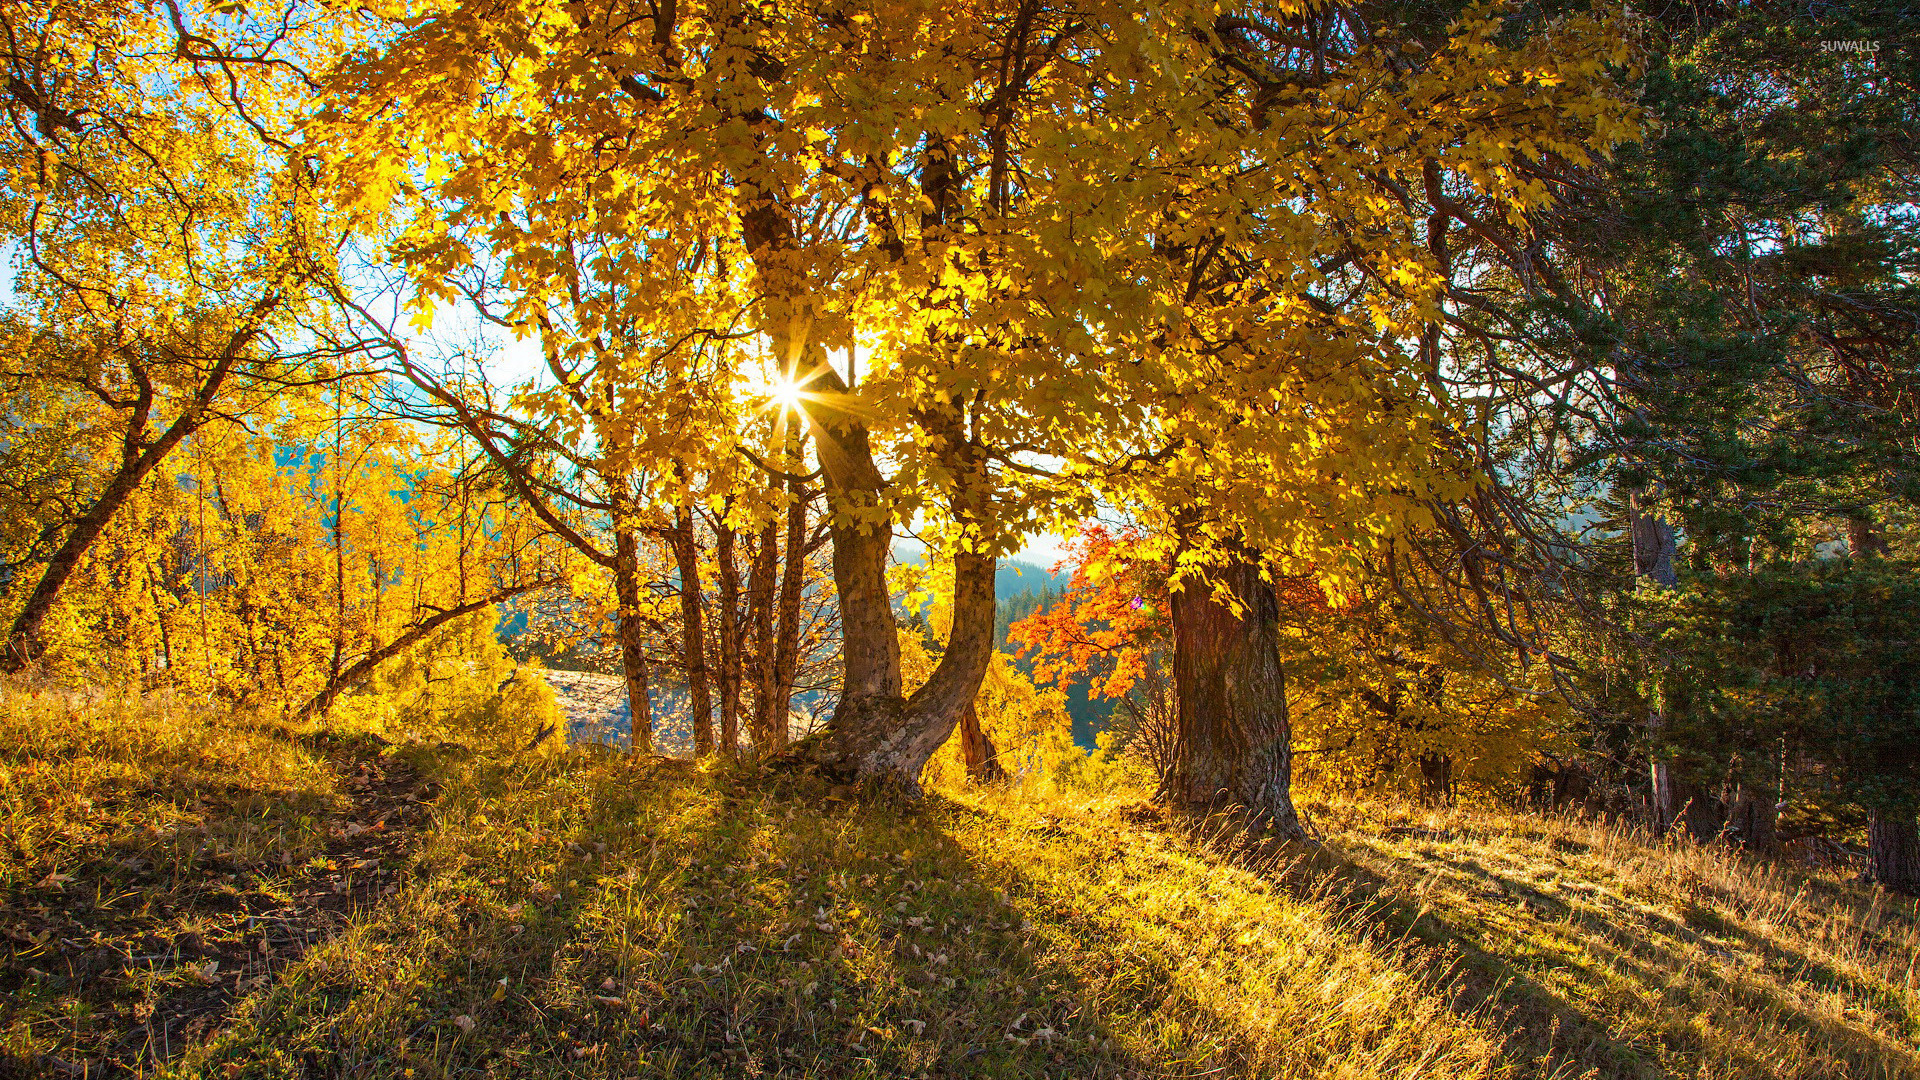 Fall Autumn Hd Wallpaper 1920x1080 Free Sun Light Through The Trees Wallpaper Nature Wallpapers